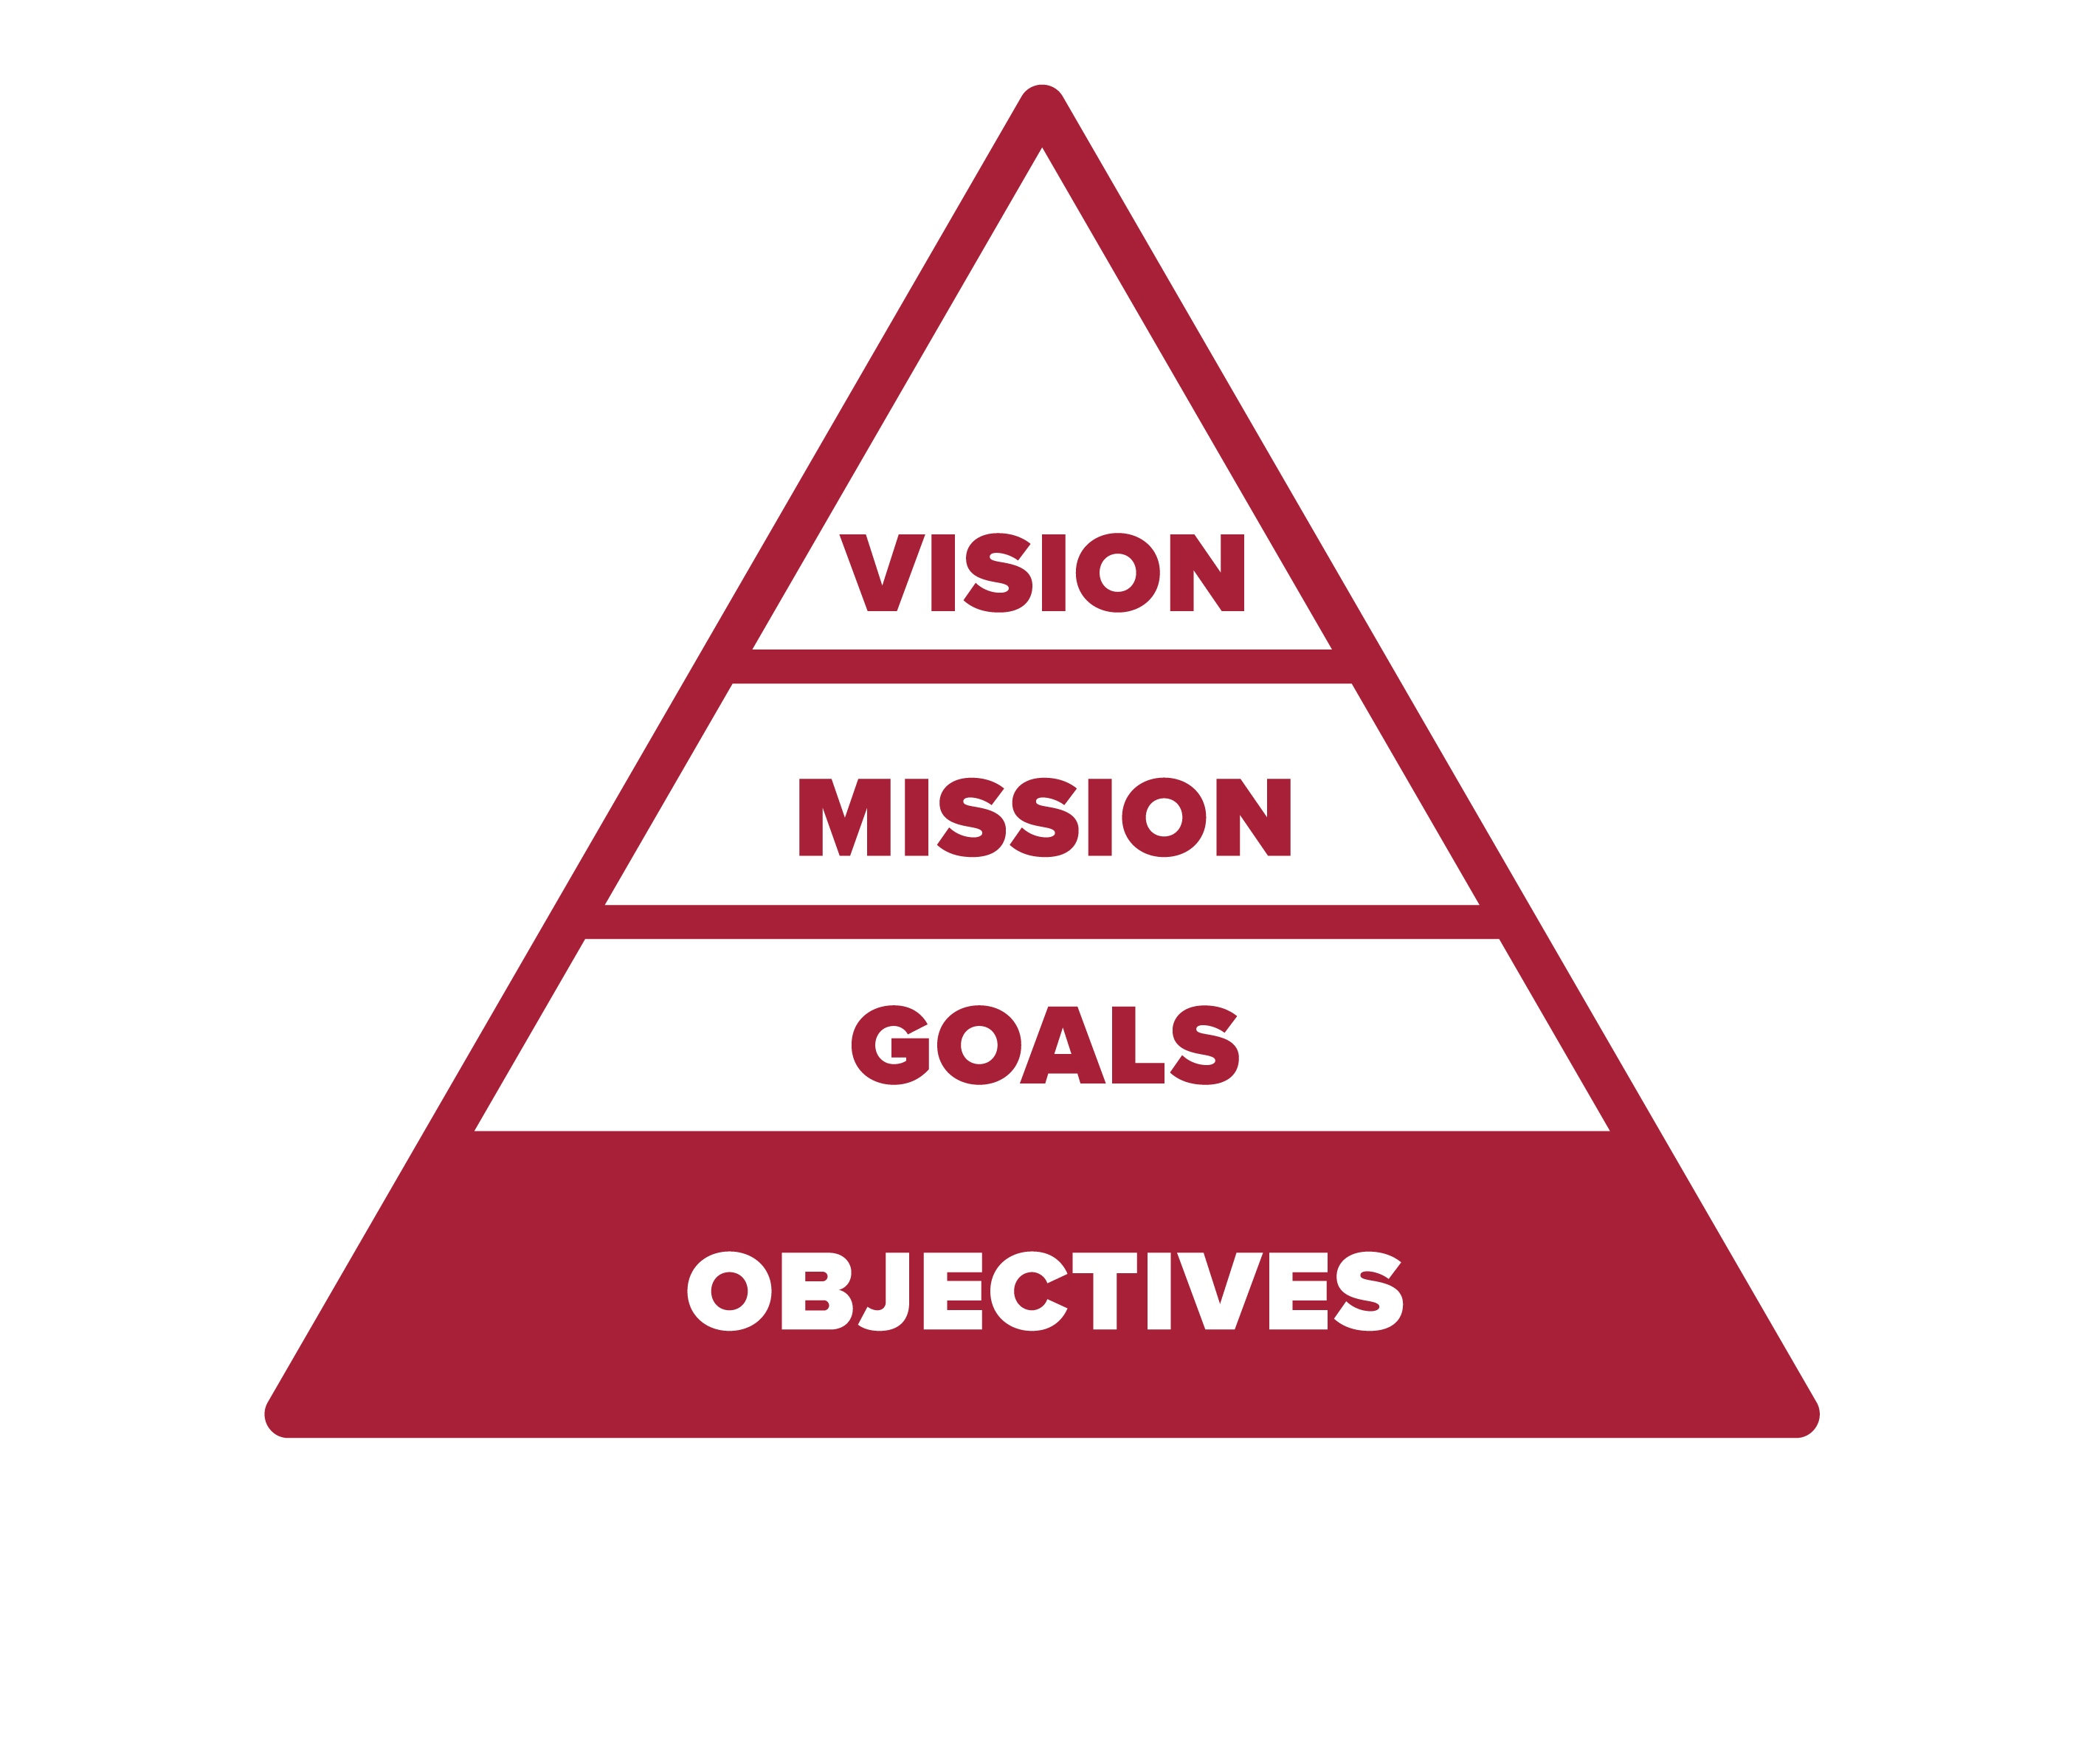 Image of objectives icon